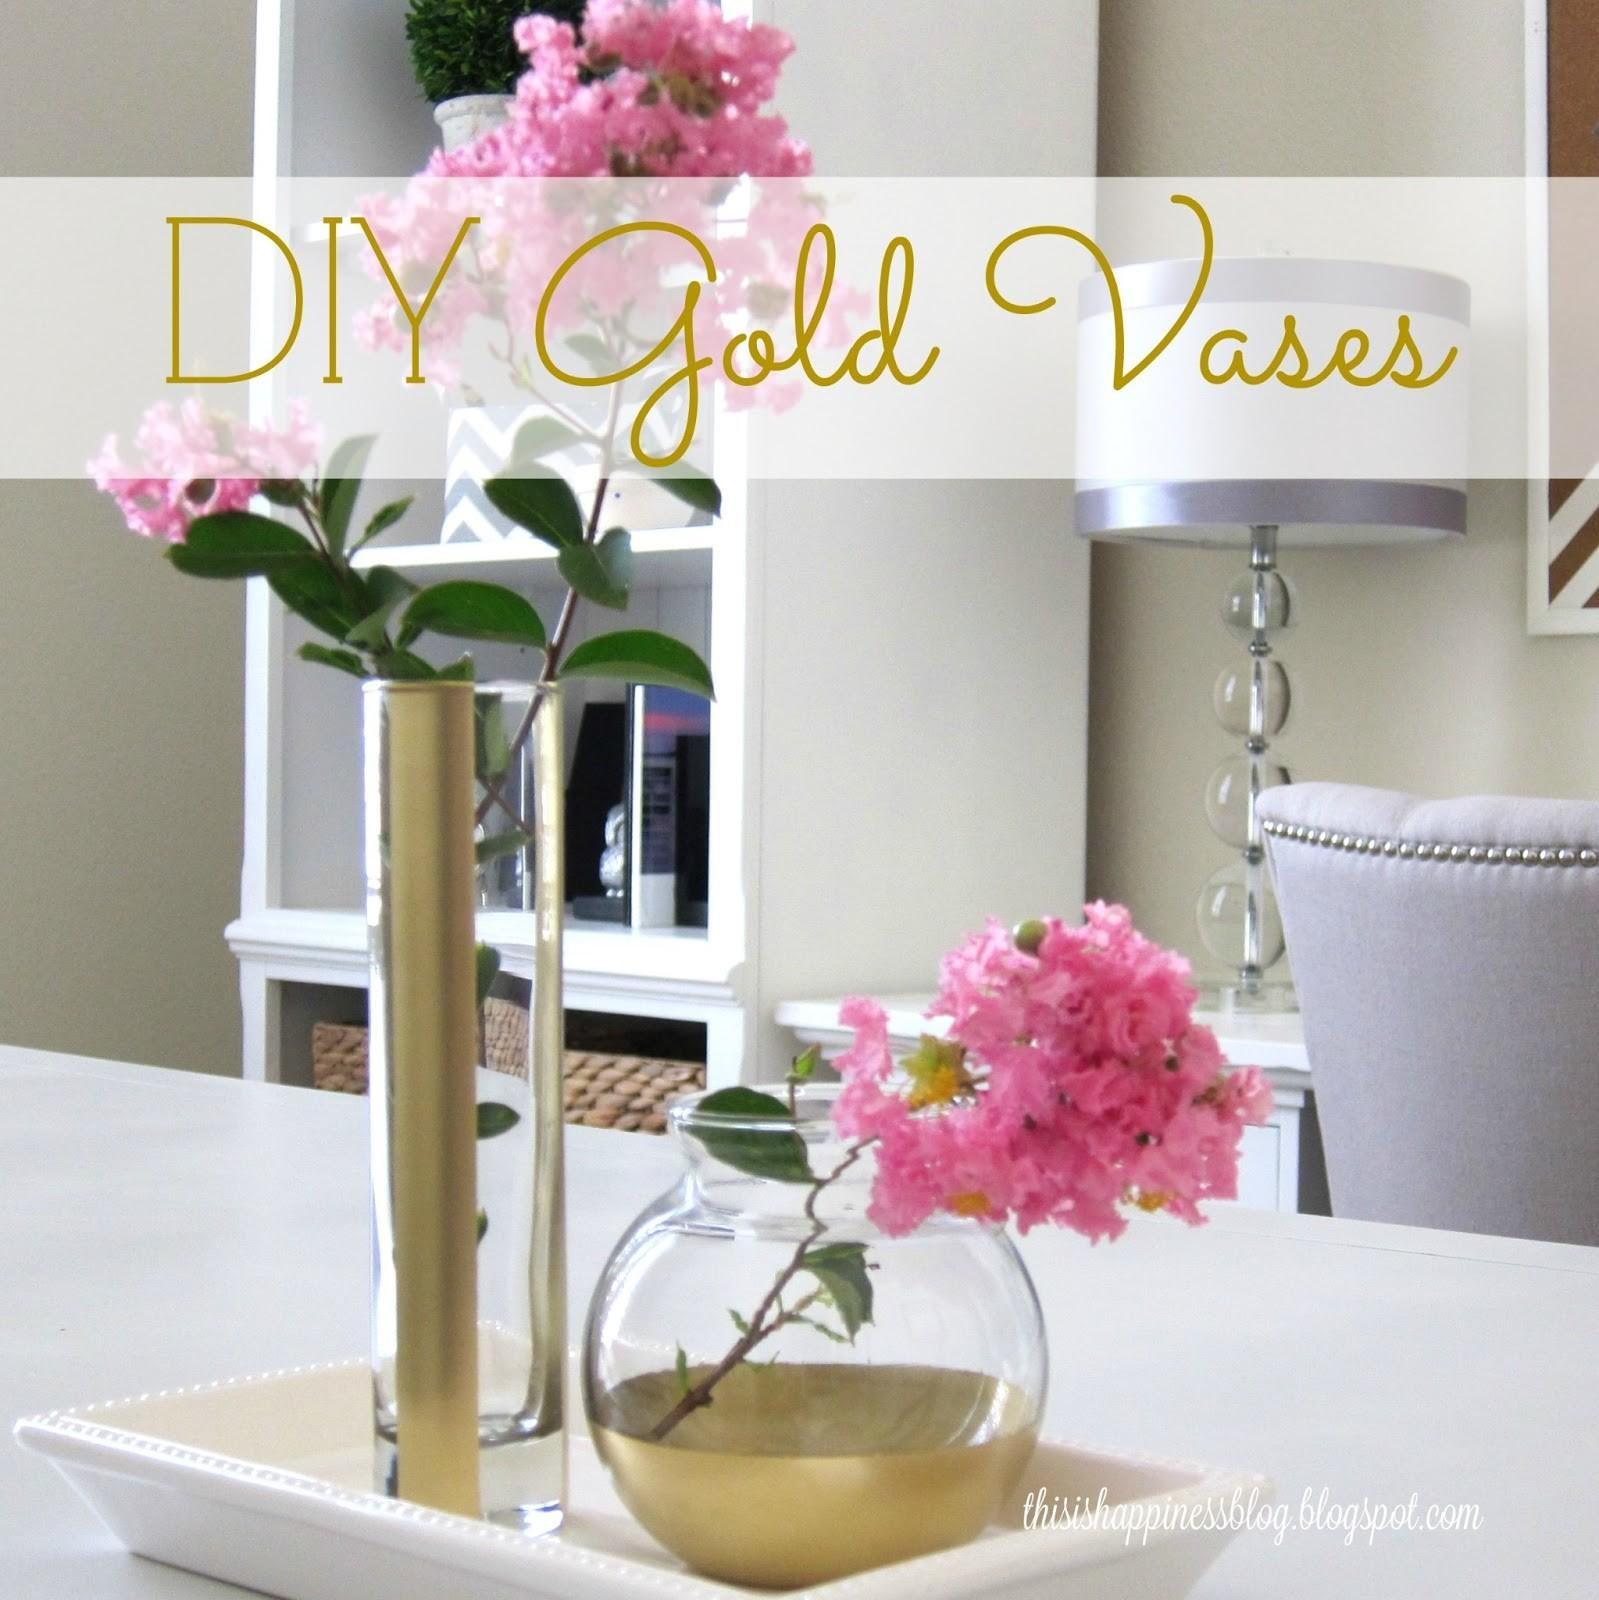 Happiness Diy Gold Vases